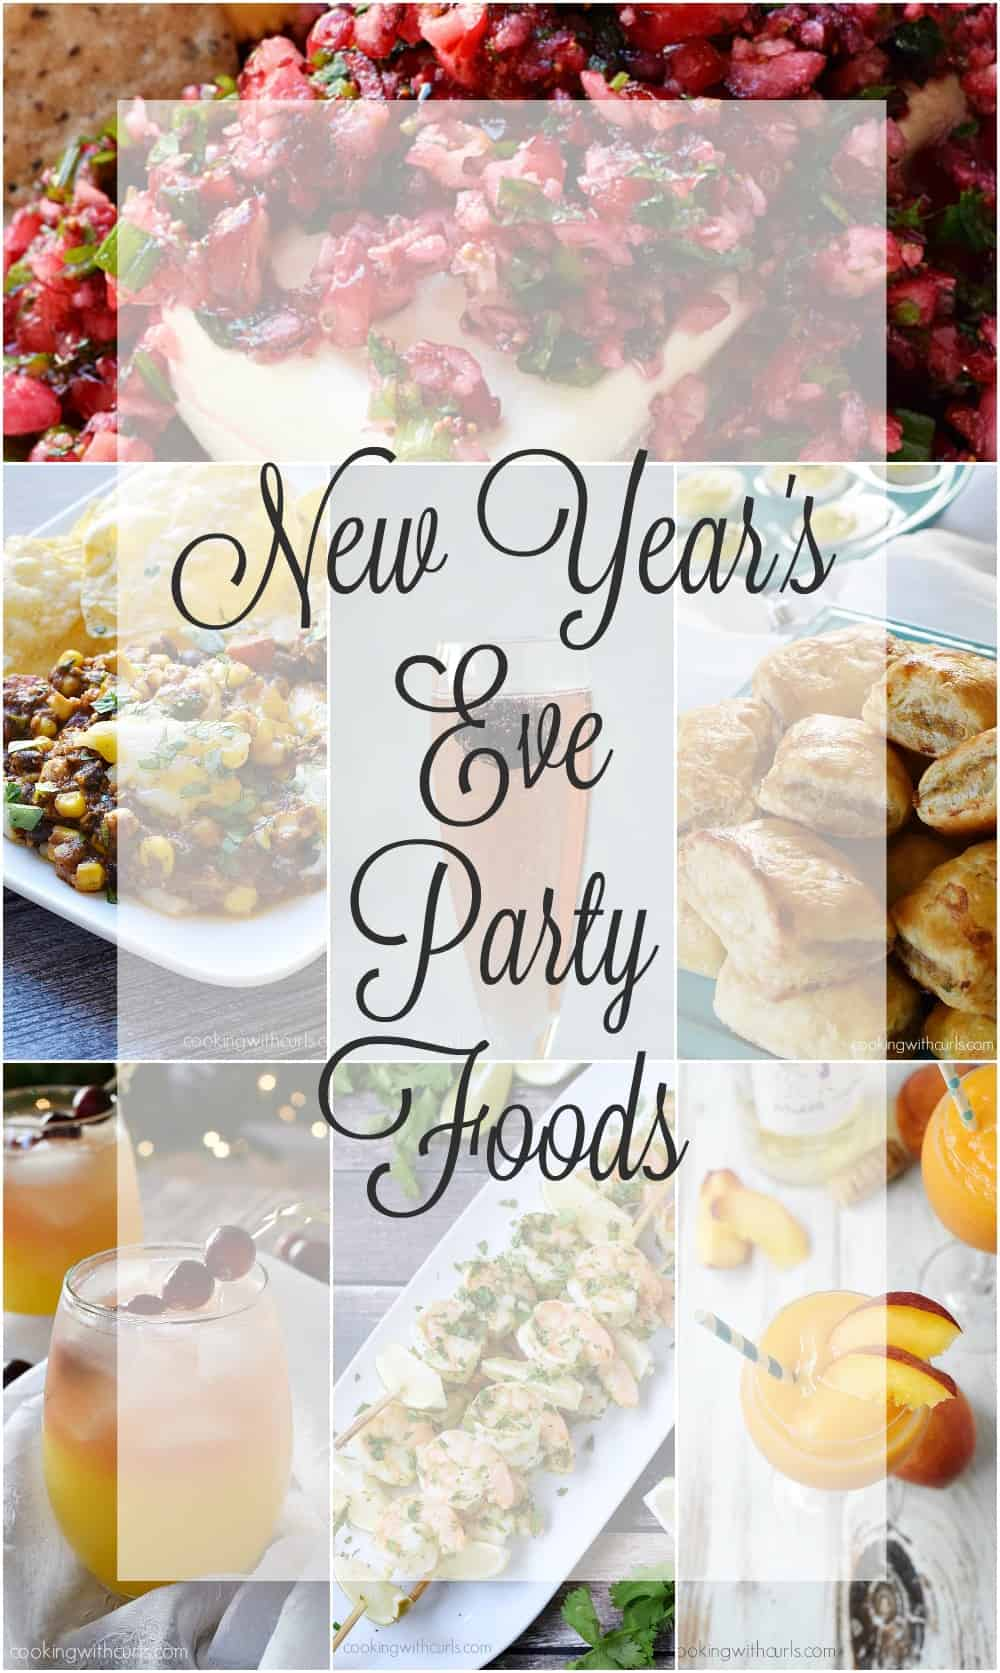 New Years Eve Party Foods 2015 | cookingwithcurls.com